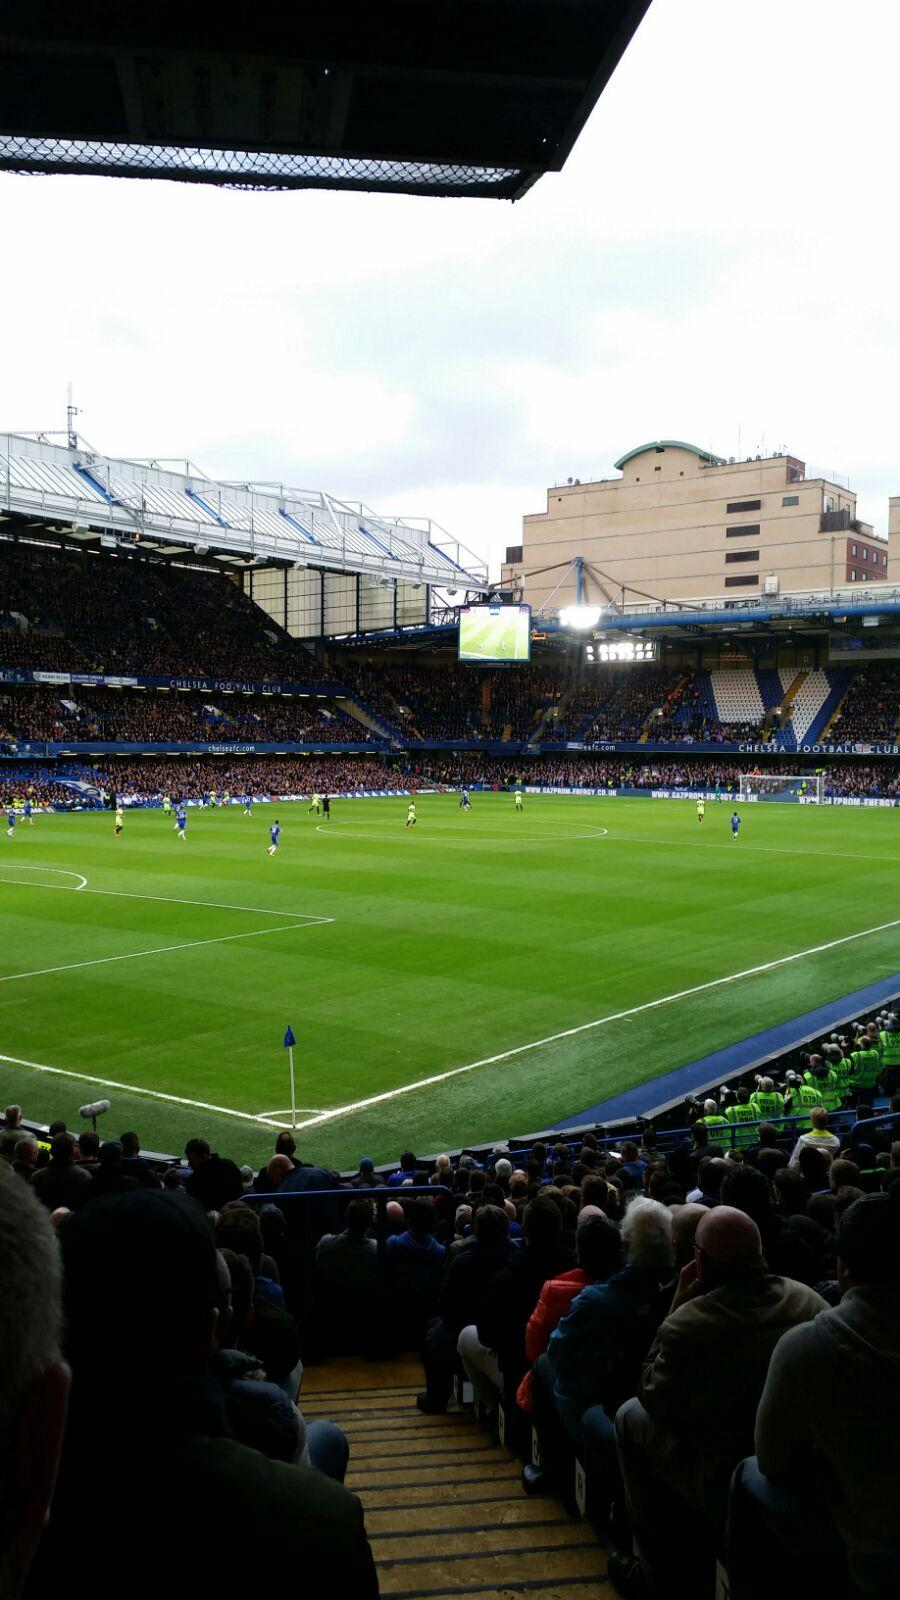 Stamford Bridge Secção Matthew Harding Lower 8 Fila U Lugar 395